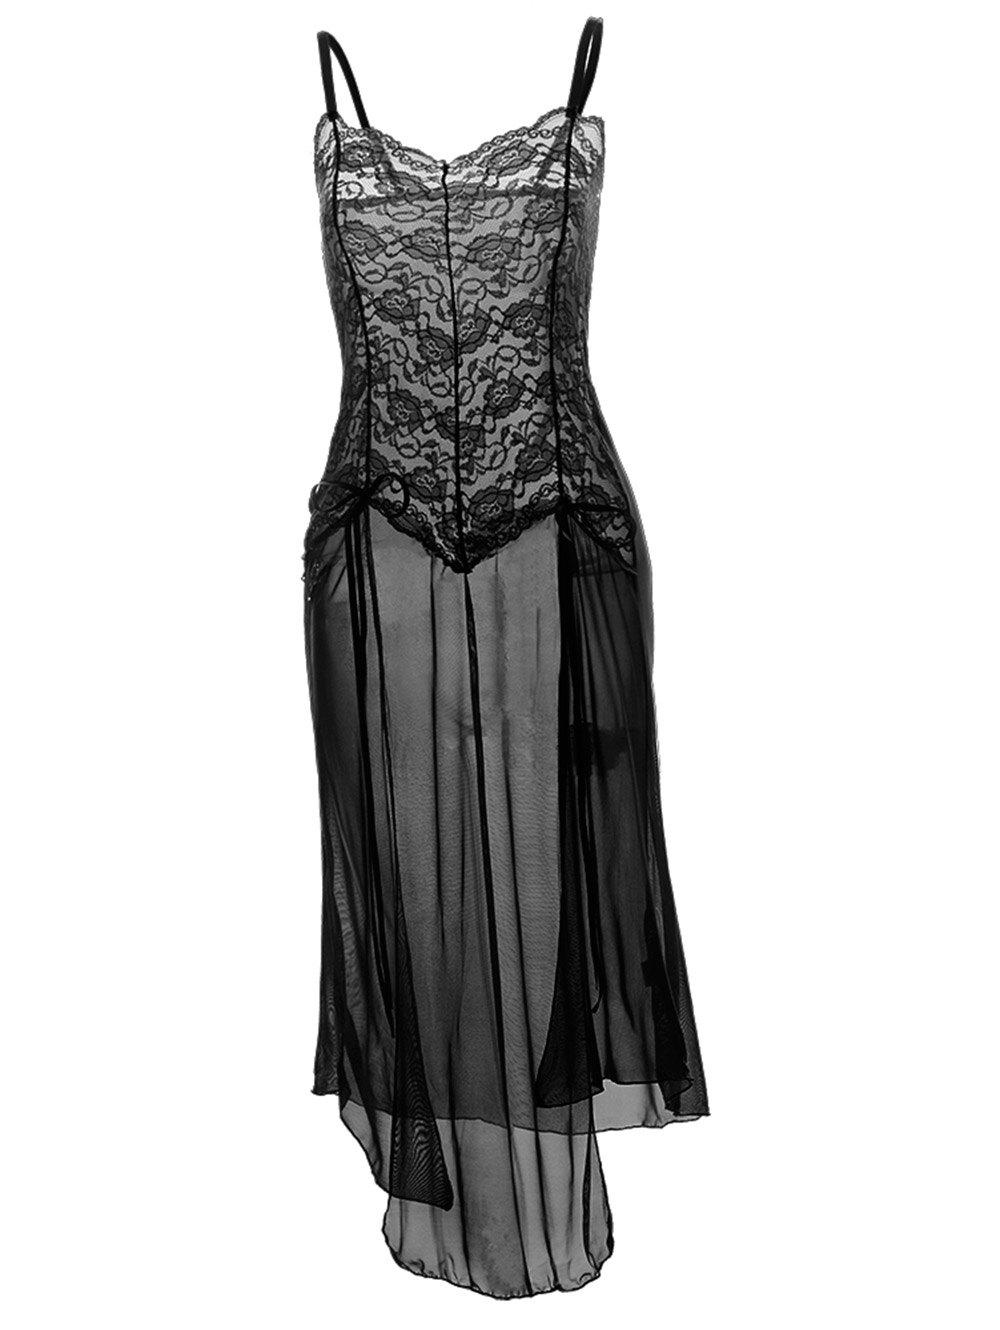 Plus Size Maxi Lace Top Sheer Slip DressWOMEN<br><br>Size: 6XL; Color: BLACK; Material: Polyester; Pattern Type: Solid; Embellishment: Bowknot; Weight: 0.2000kg; Package Contents: 1 x Dress  1 x G-String;